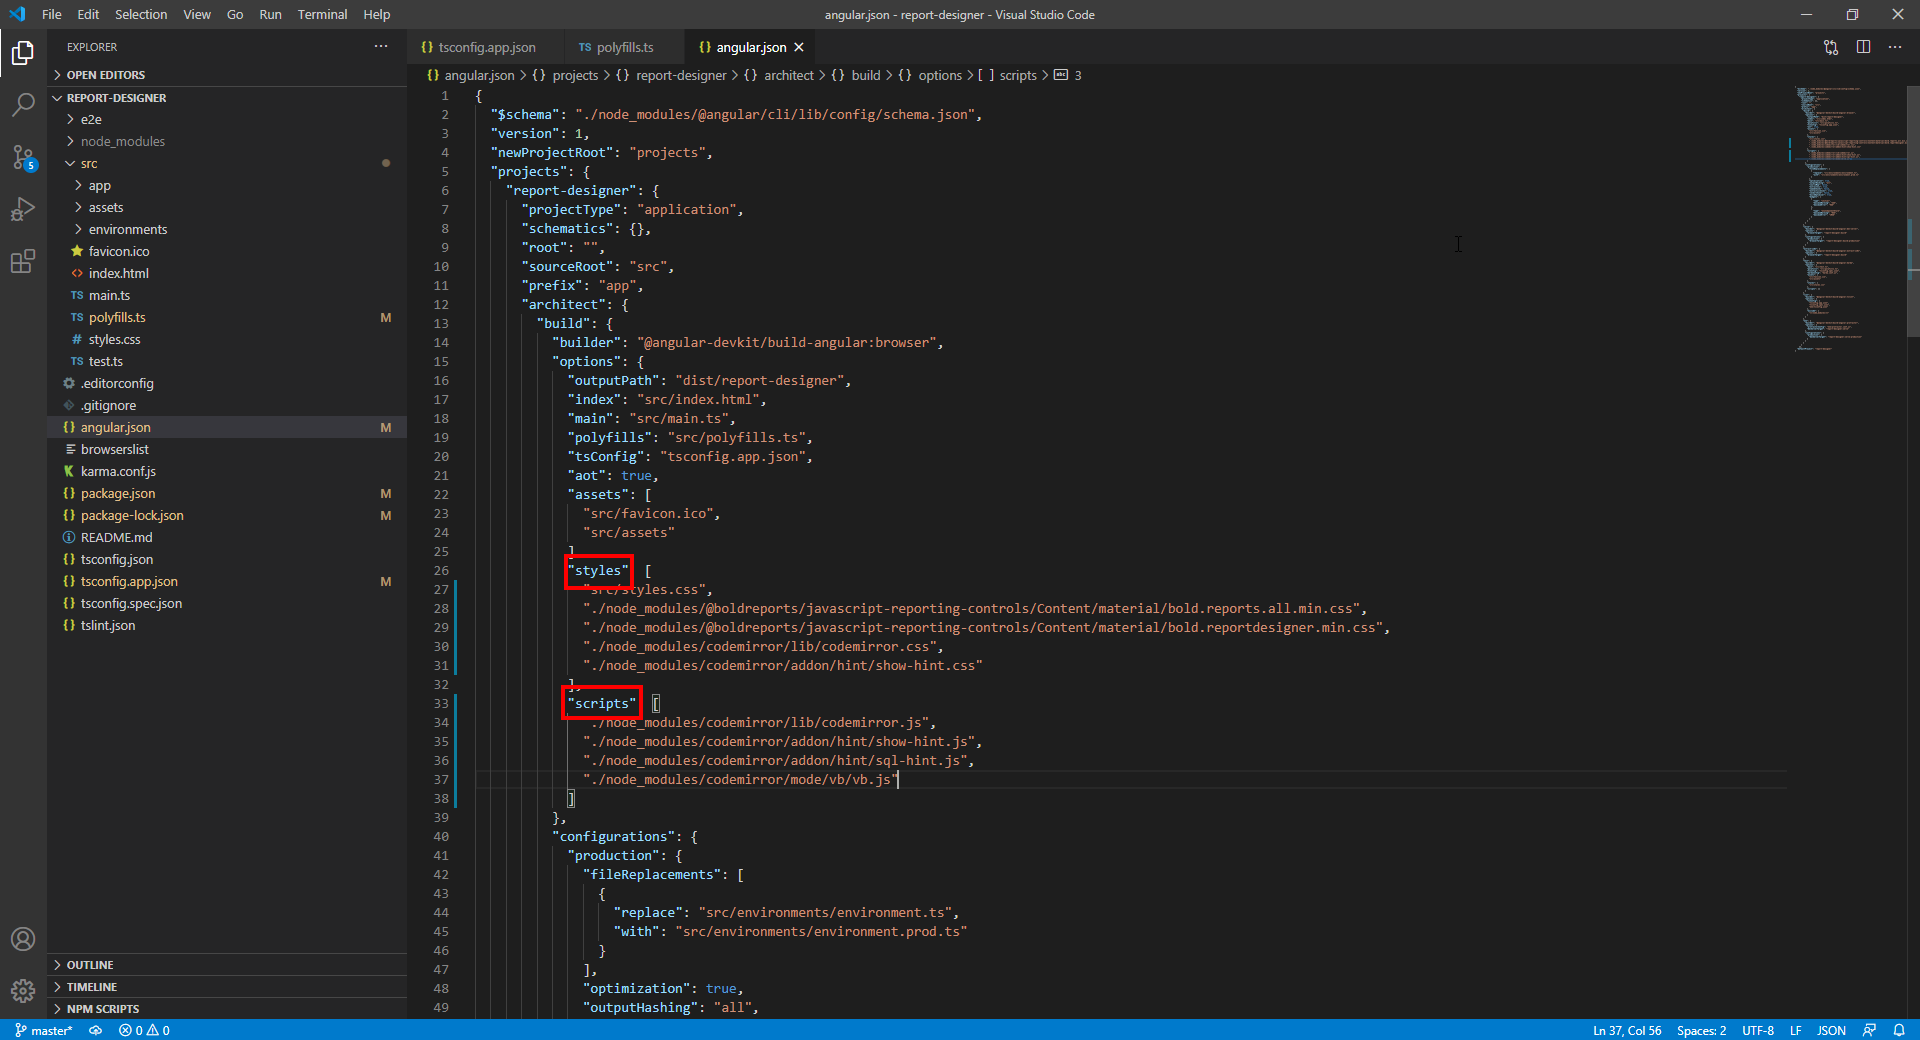 Adding Code Mirror reference